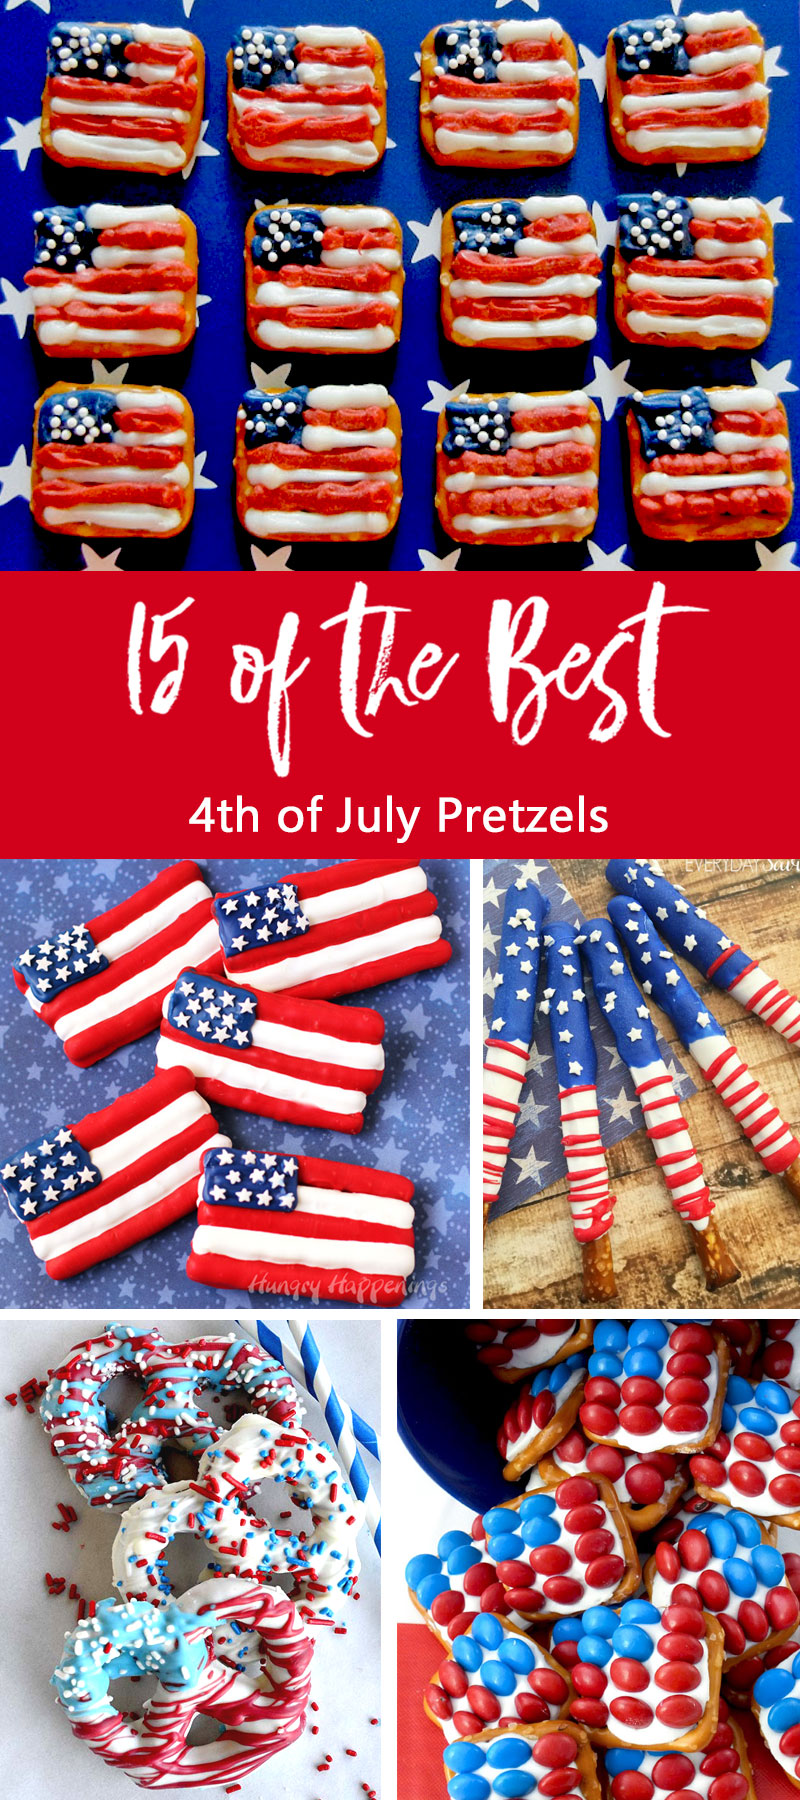 We've found 15 of the Best 4th of July Pretzels and they are sweet, salty, delicious and red, white and blue! They'd be perfect 4th of July dessert for your Fourth of July party or summer family BBQ! These 15 yummy Patriotic Pretzel Snacks will be a delicious 4th of July treat.  Pin these easy to make Independence Day desserts for later and follow us for more 4th of July Food Ideas.